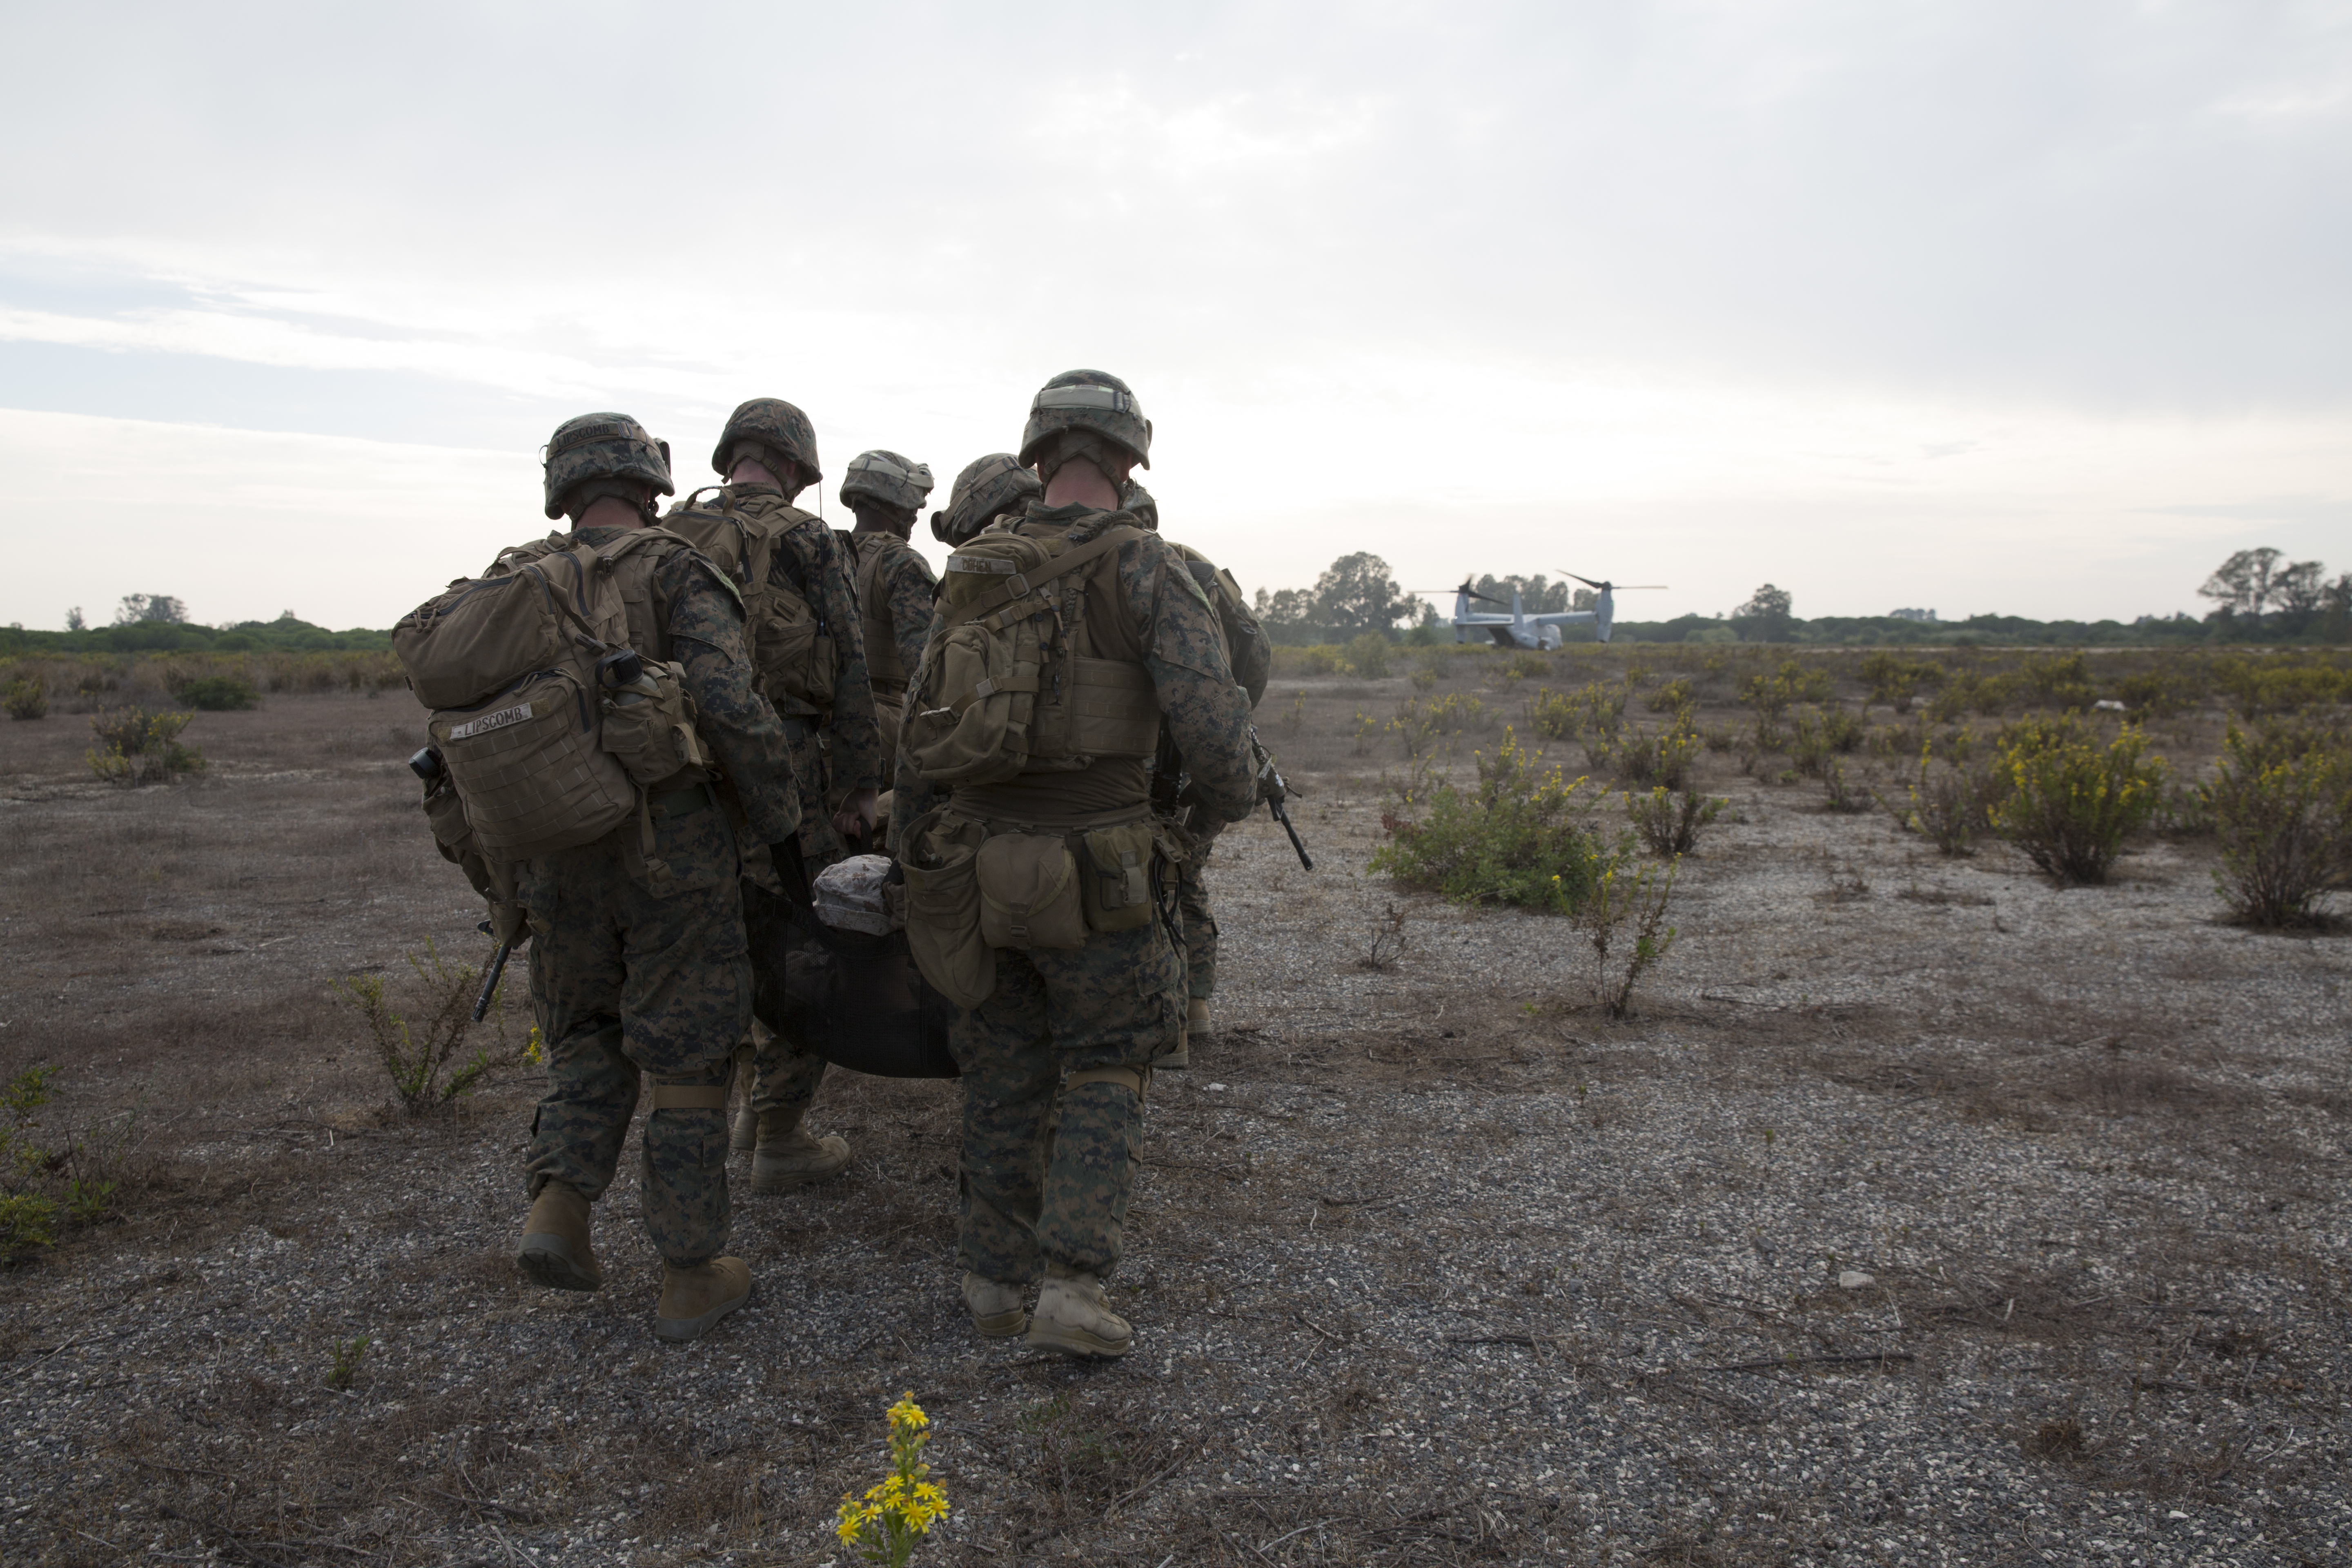 U.S. Marines assigned to Special Purpose Marine Air Ground Task Force-Crisis Response-Africa carry a simulated casualty back to safety during an alert force drill at Naval Station Rota, Spain, Oct. 20, 2016. The purpose of the drill was to rehearse and assess the SPMAGTF's ability to integrate elements and respond to a time-sensitive crisis. SPMAGTF-CR-AF is designed to provide contingency support to U.S. Africa Command, including tactical recovery of aircraft and personnel, embassy reinforcement, support to noncombatant evacuation operations, humanitarian assistance, and disaster relief. (U.S. Marine Corps photo by Sgt. Jessika Braden/ Released)